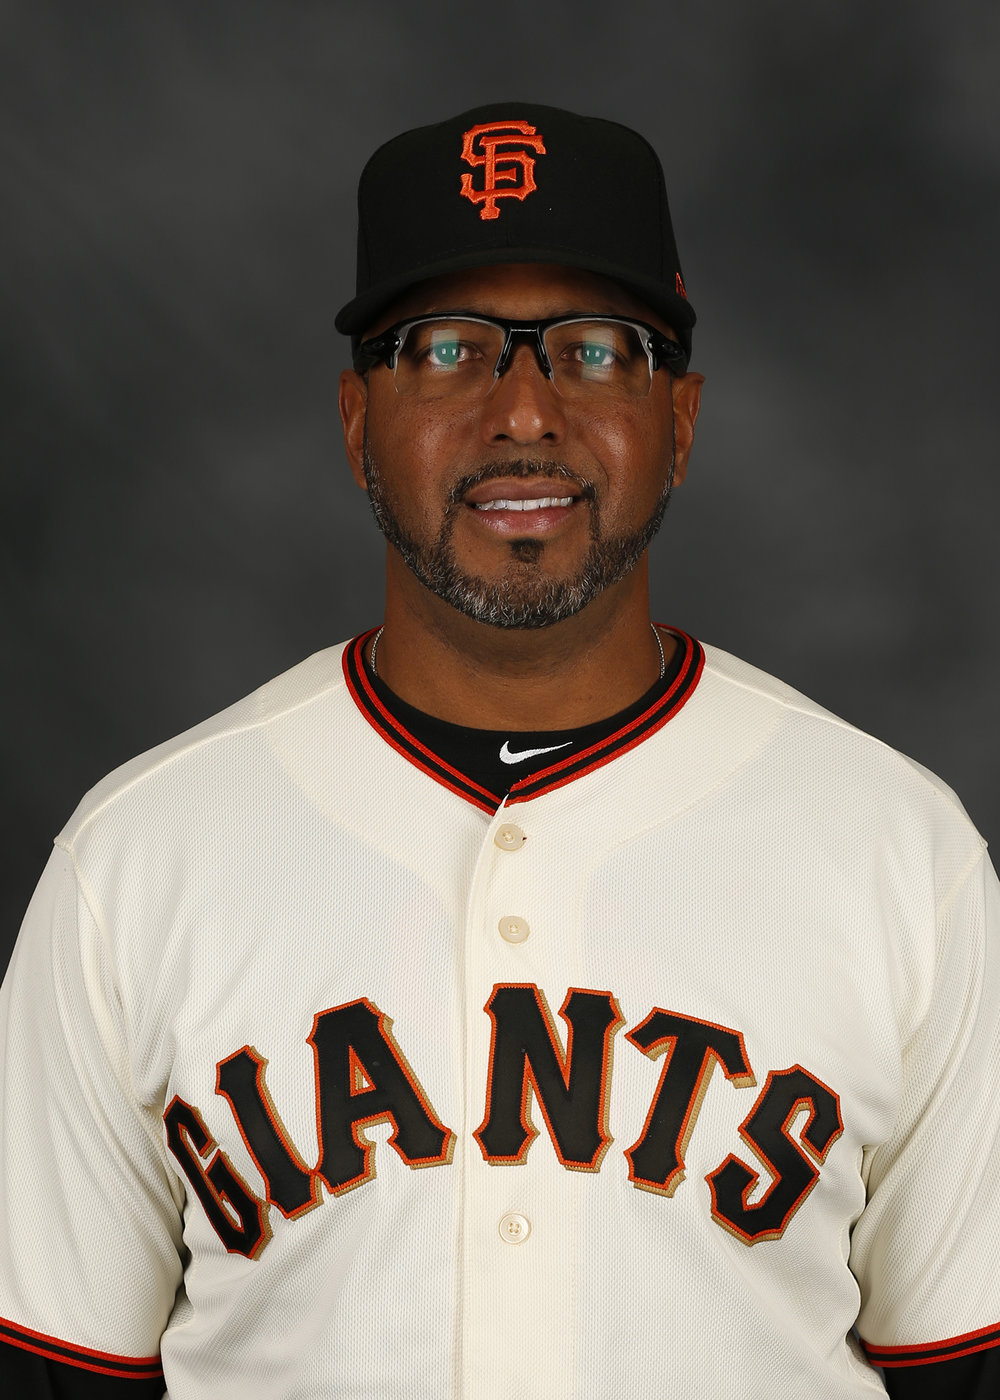 "Jose Alguacil   Jose Alguacil enters his second season as the first base coach for the San Francisco Giants.  Prior to this, he served as manager for the Triple-A Sacramento River Cats in 2016. The native of Venezuela, often referred to by his nickname of ""Agui,"" spent six seasons (1993-98) as an infielder in the San Francisco Giants farm system and returned to the organization in 2007 to work as a roving instructor."